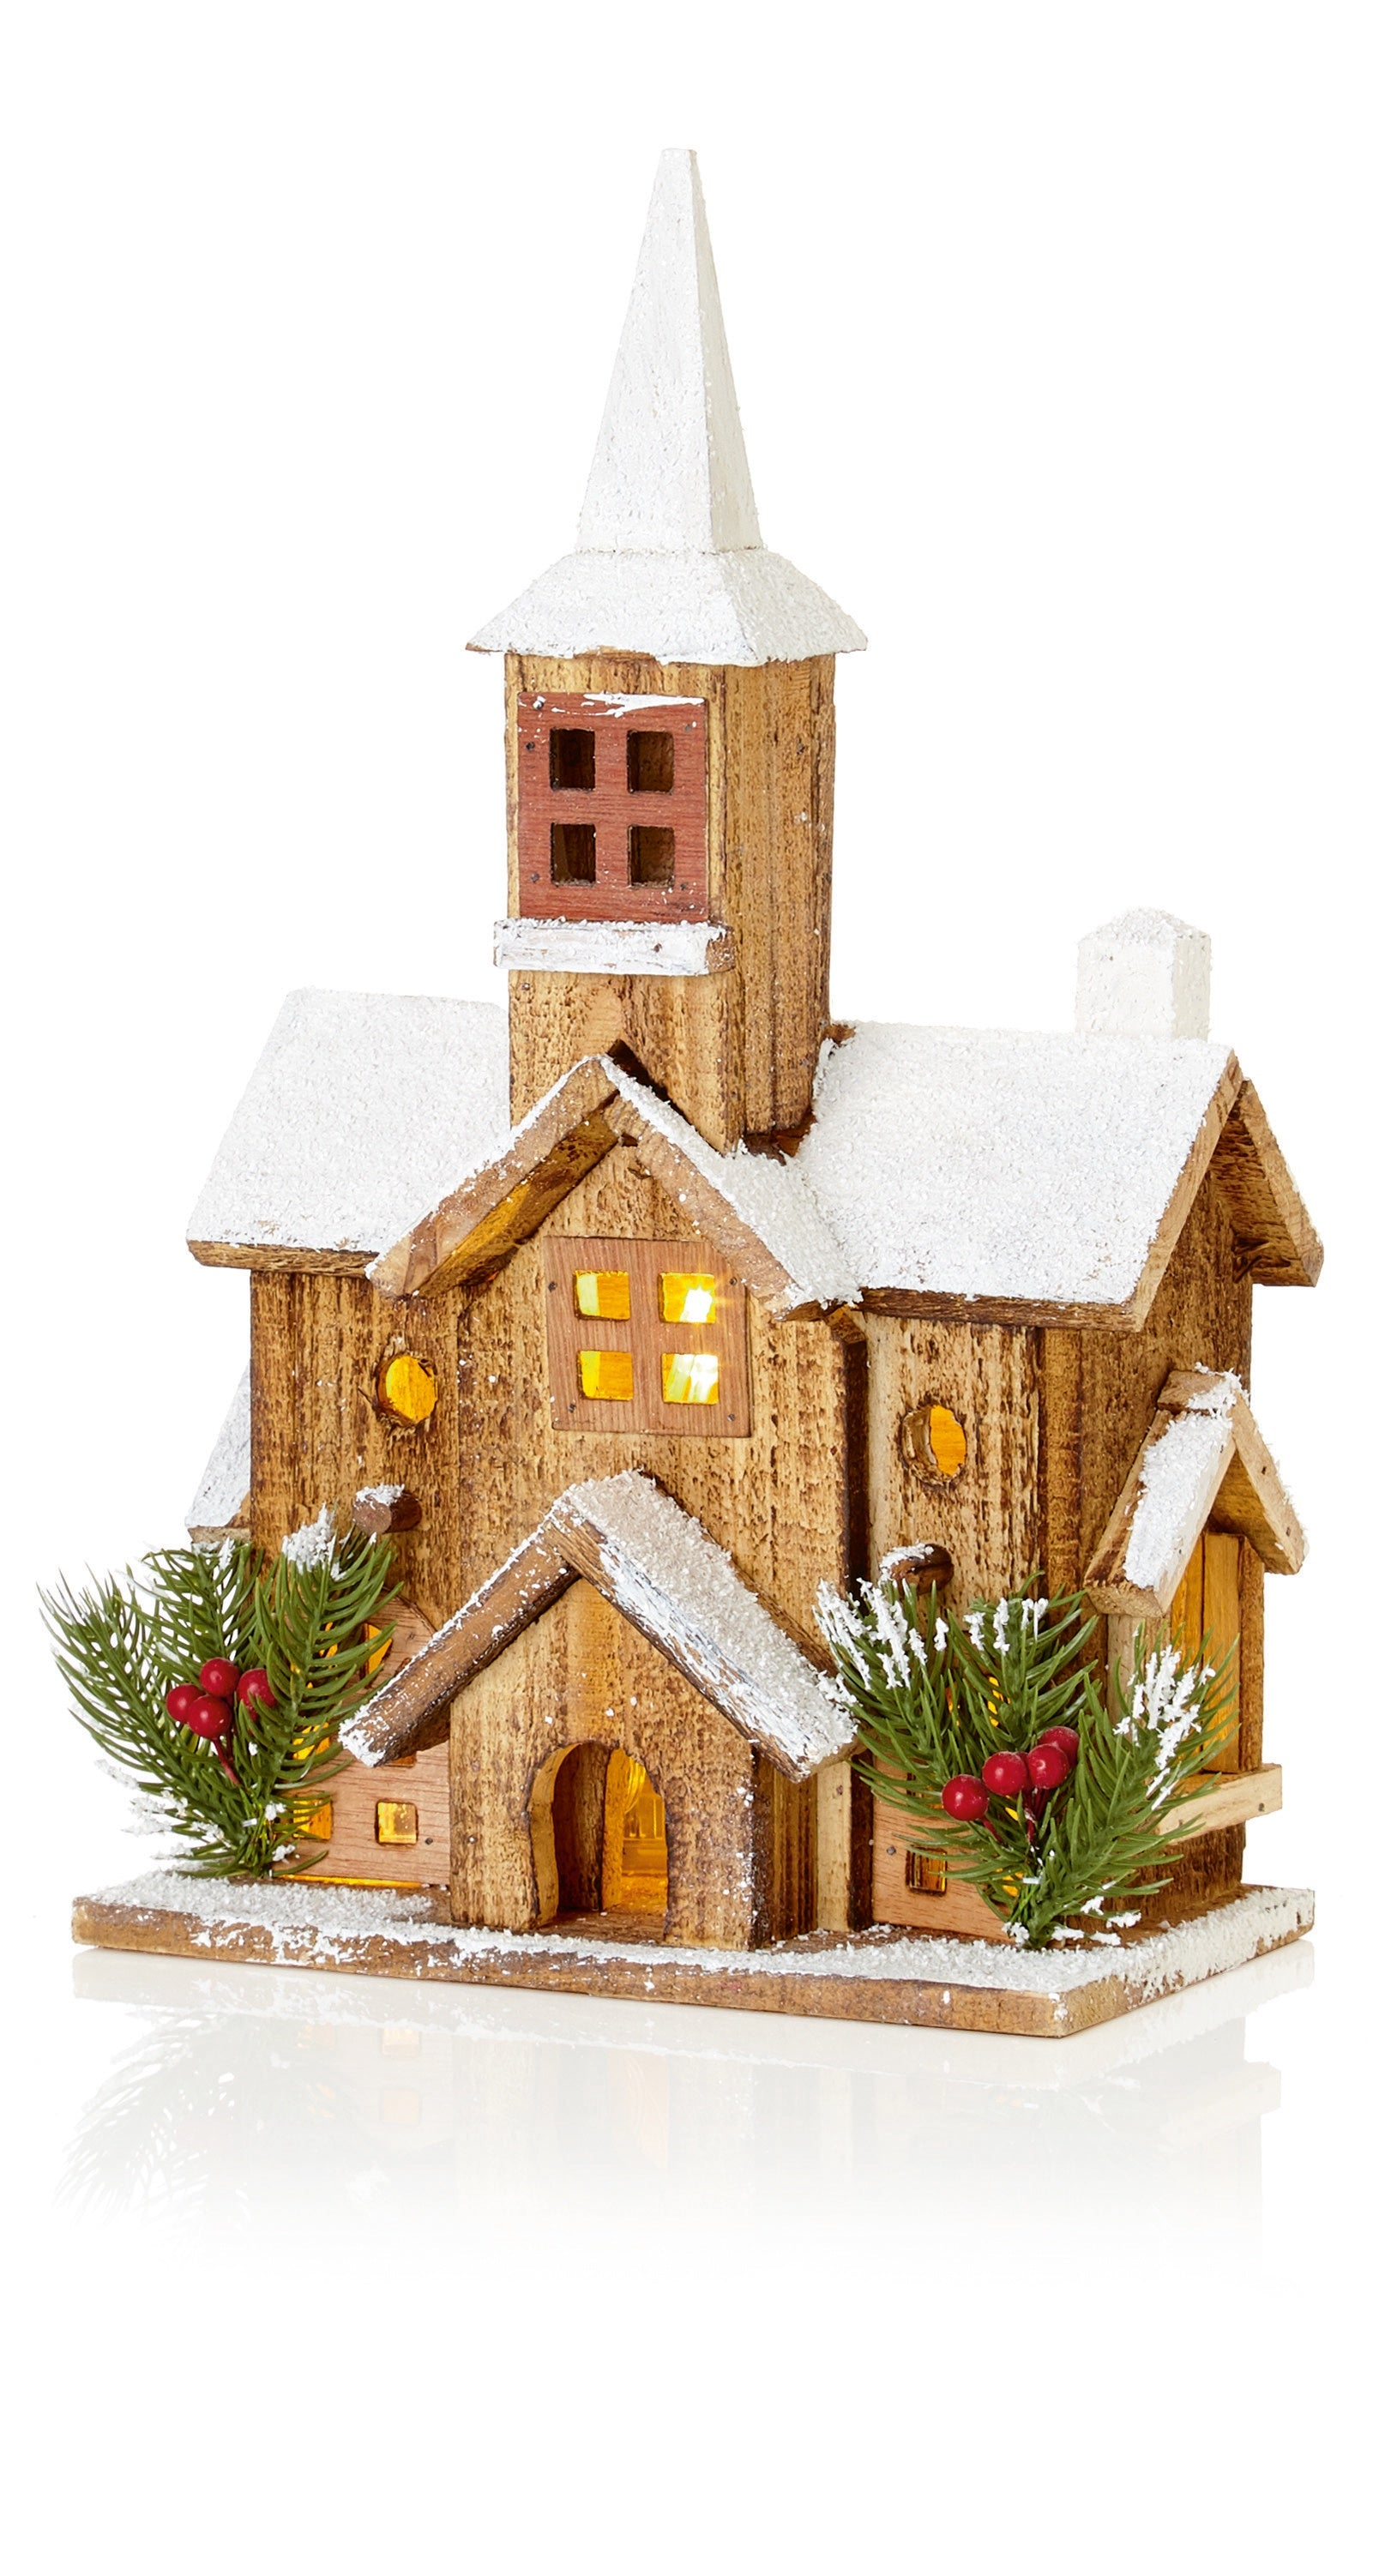 38cm Wooden Church with Steeple